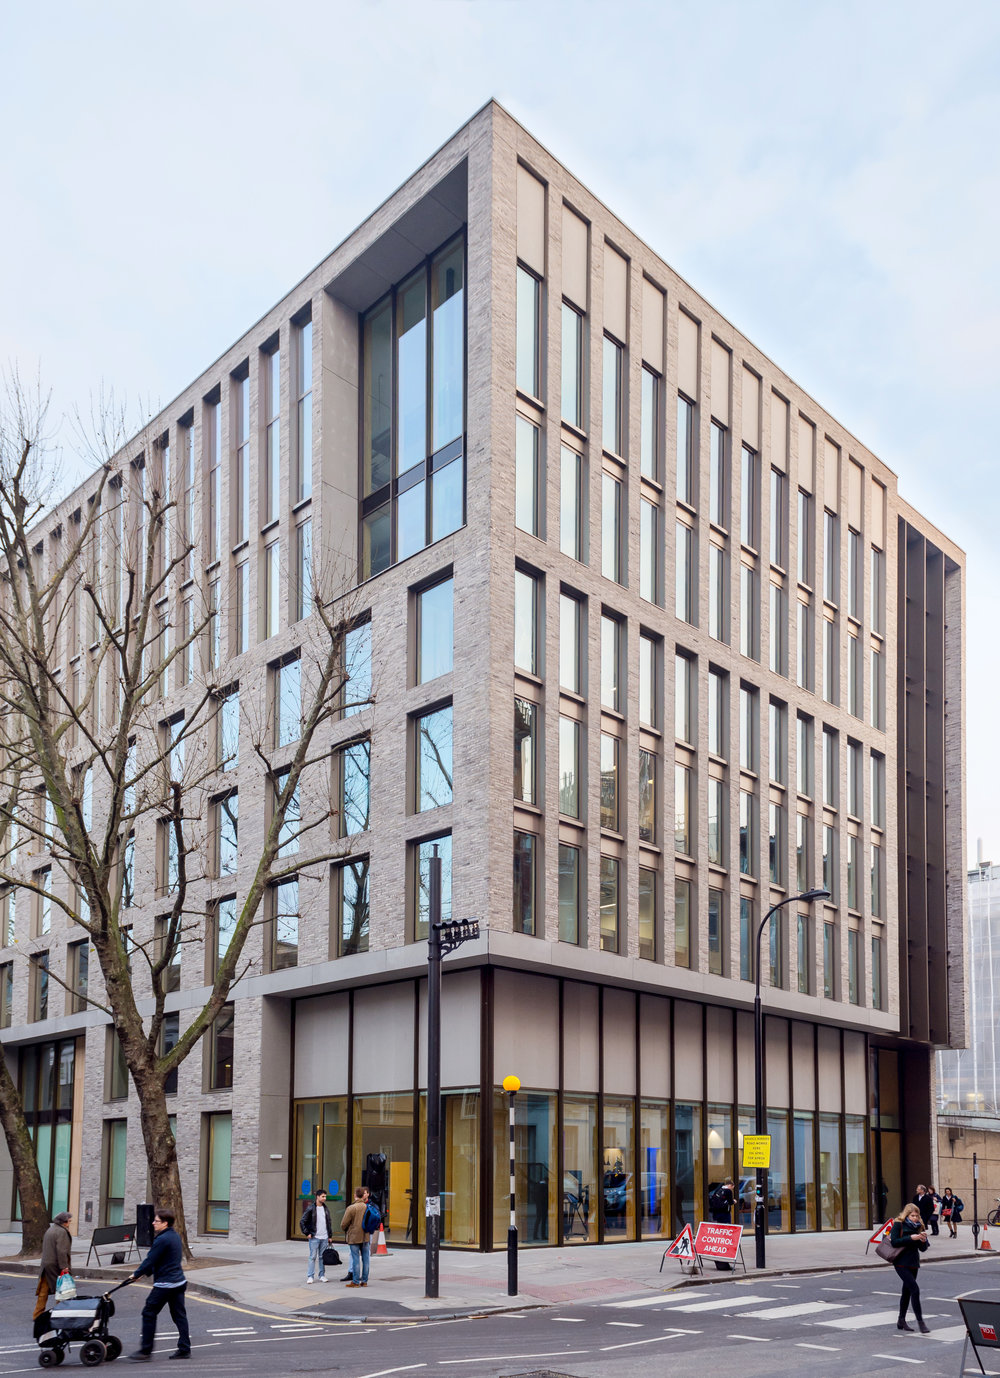 The exterior of the refurbished Bartlett School of Architecture, 22 Gordon Street. London by Hawkins/Brown Architects